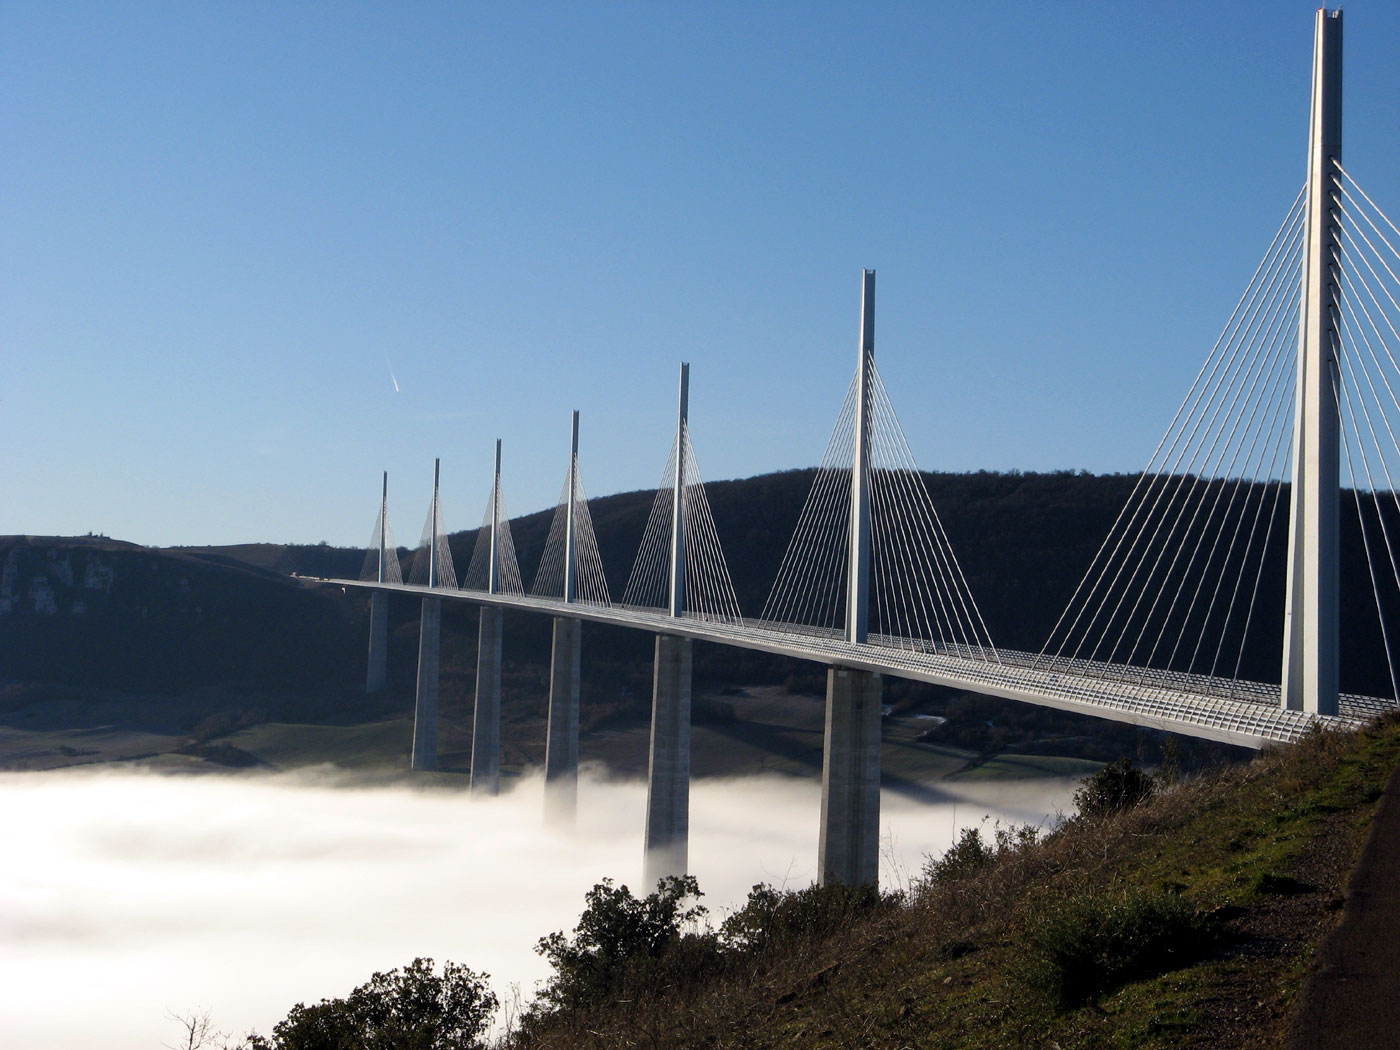 millau bridge Millau bridge is one of the highest and longest bridges in the world it is a cable-stayed bridge in southern france and it crosses over the tarn river valley it is.